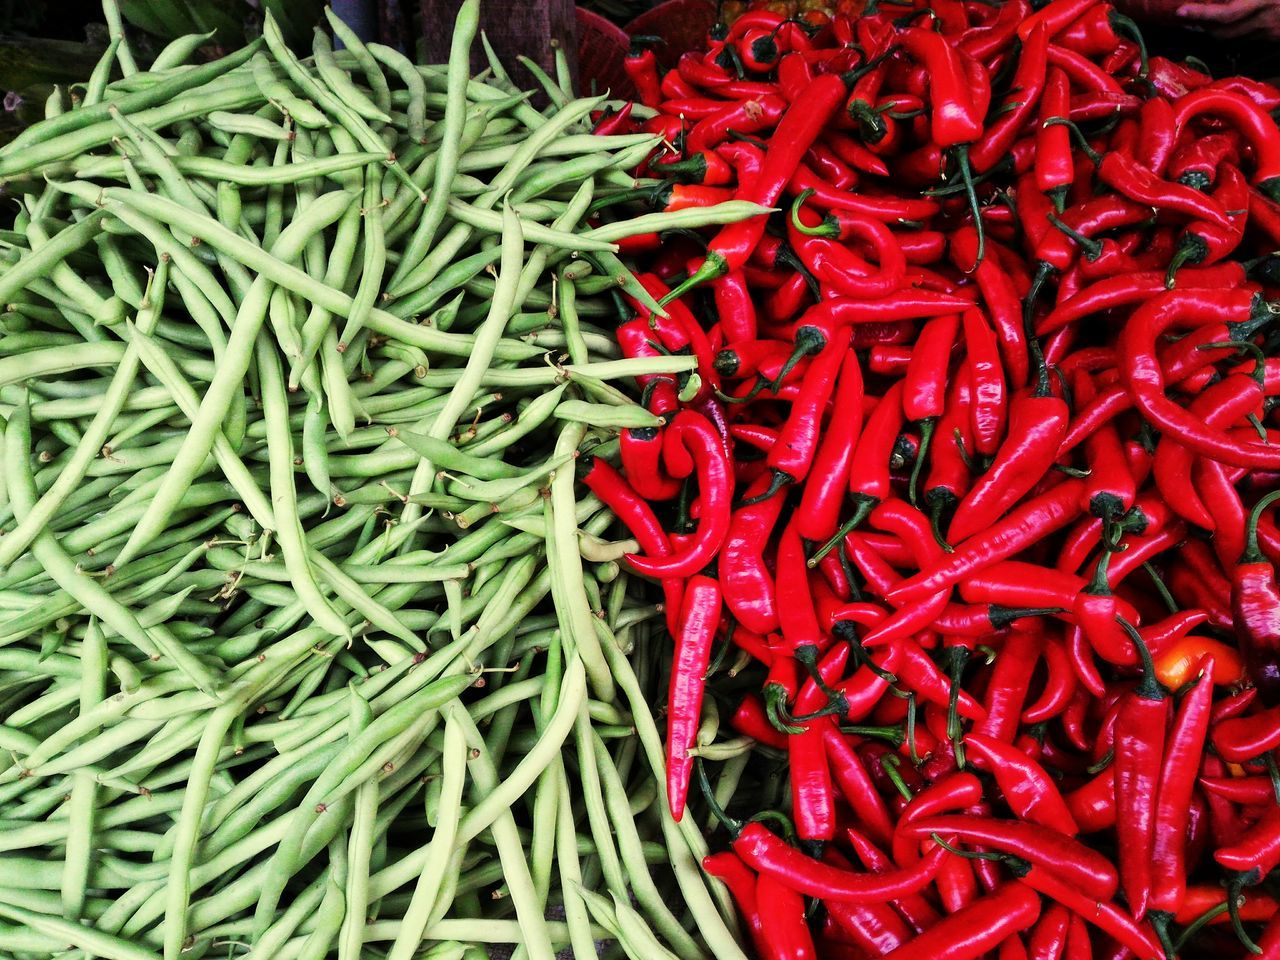 spice, red, abundance, food and drink, food, pepper, freshness, large group of objects, for sale, green color, no people, market, full frame, outdoors, healthy eating, backgrounds, day, close-up